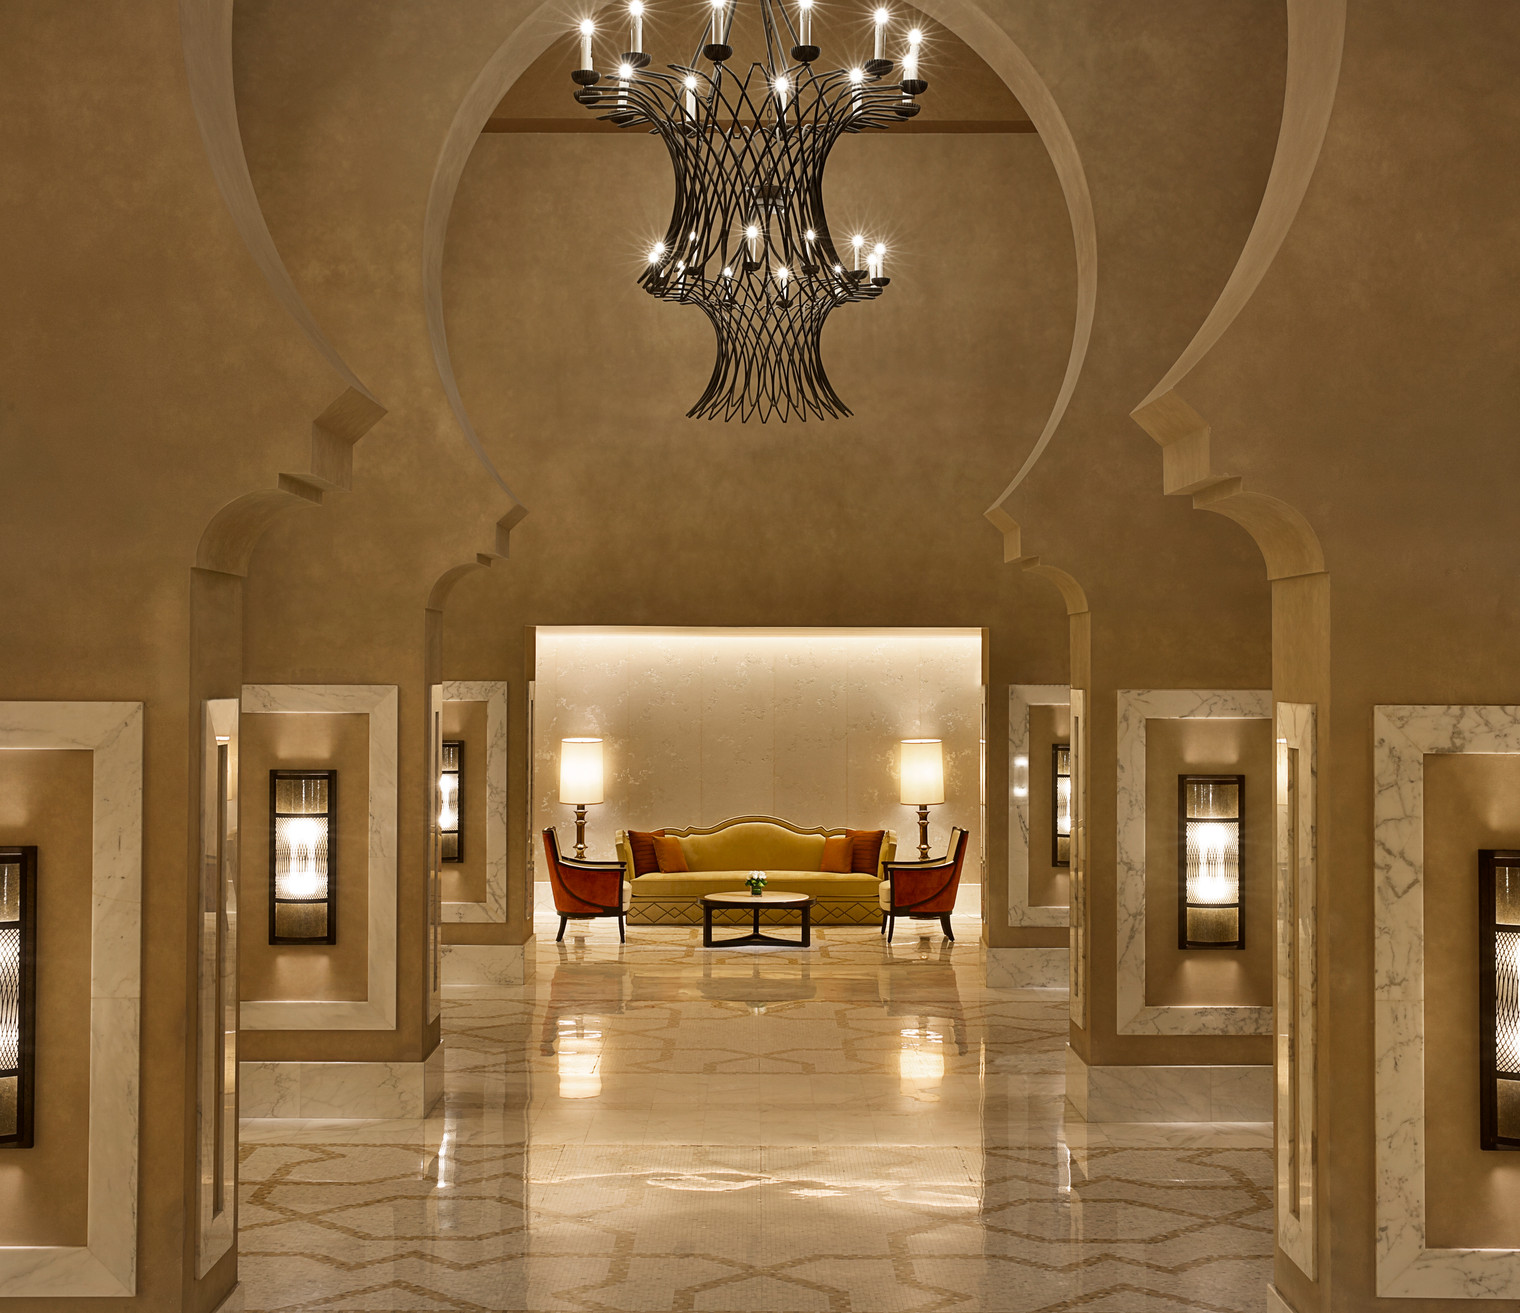 Marriot-inside-page-main-photo.jpg